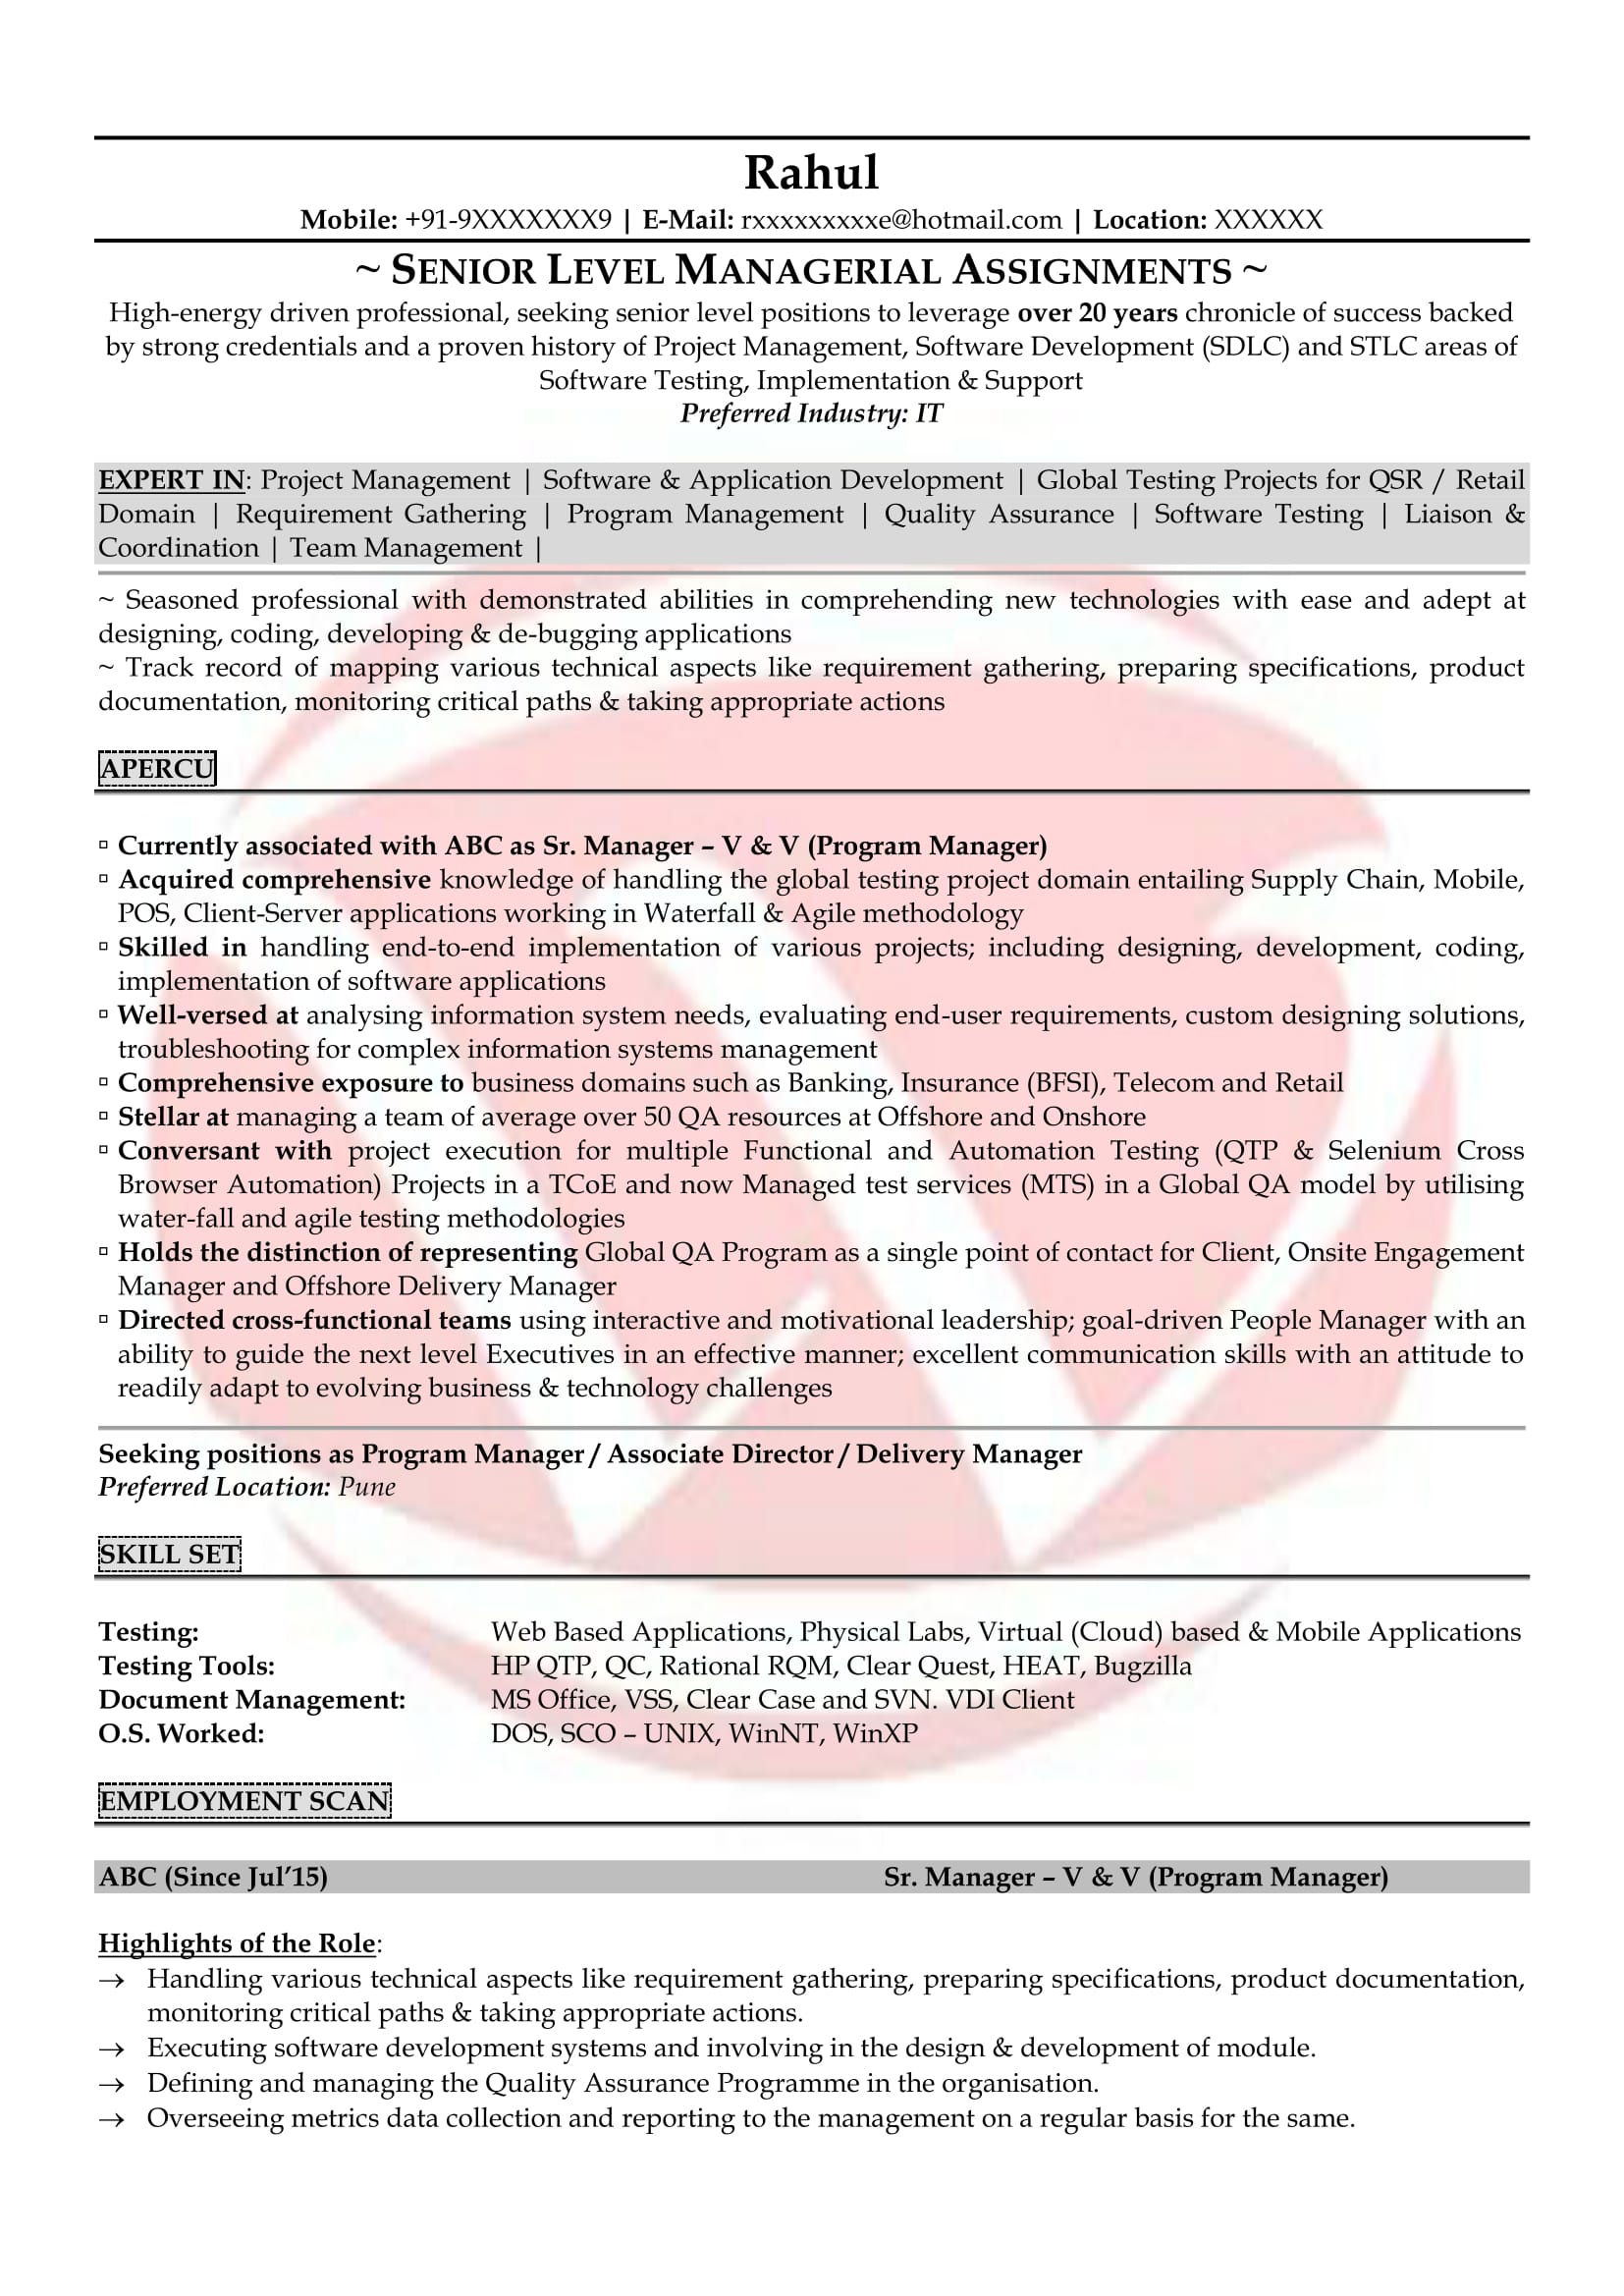 software testing sample resumes resume format templates samples for years experience Resume Software Testing Resume Samples For 5 Years Experience